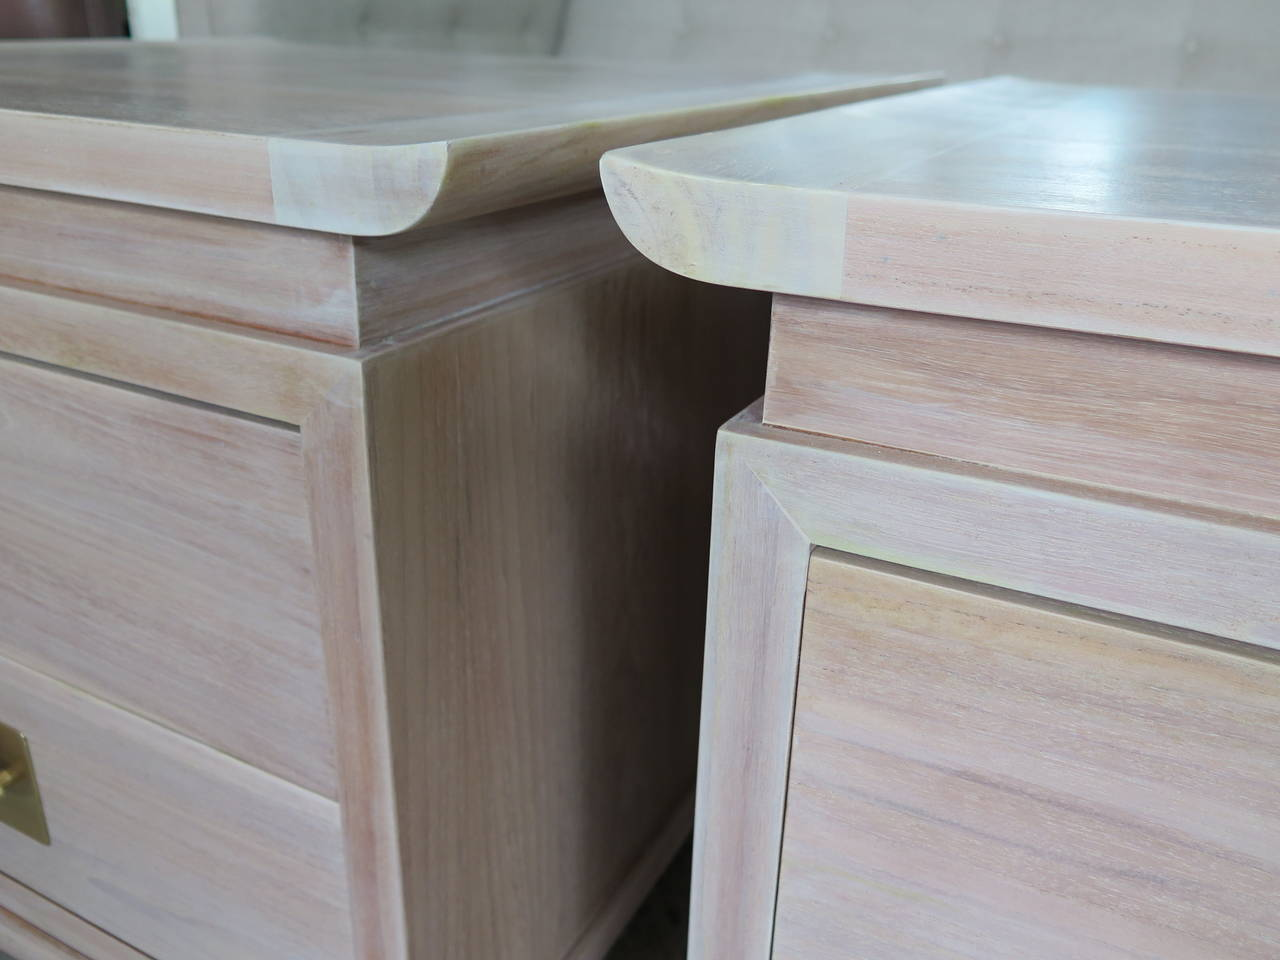 A great pair of Chinese style nightstands. Elegant raised edges, heavy, solid brass newly polished hardware (brushed satin lacquered finish). The cabinet backs are finished. New white wash/pickled finish.